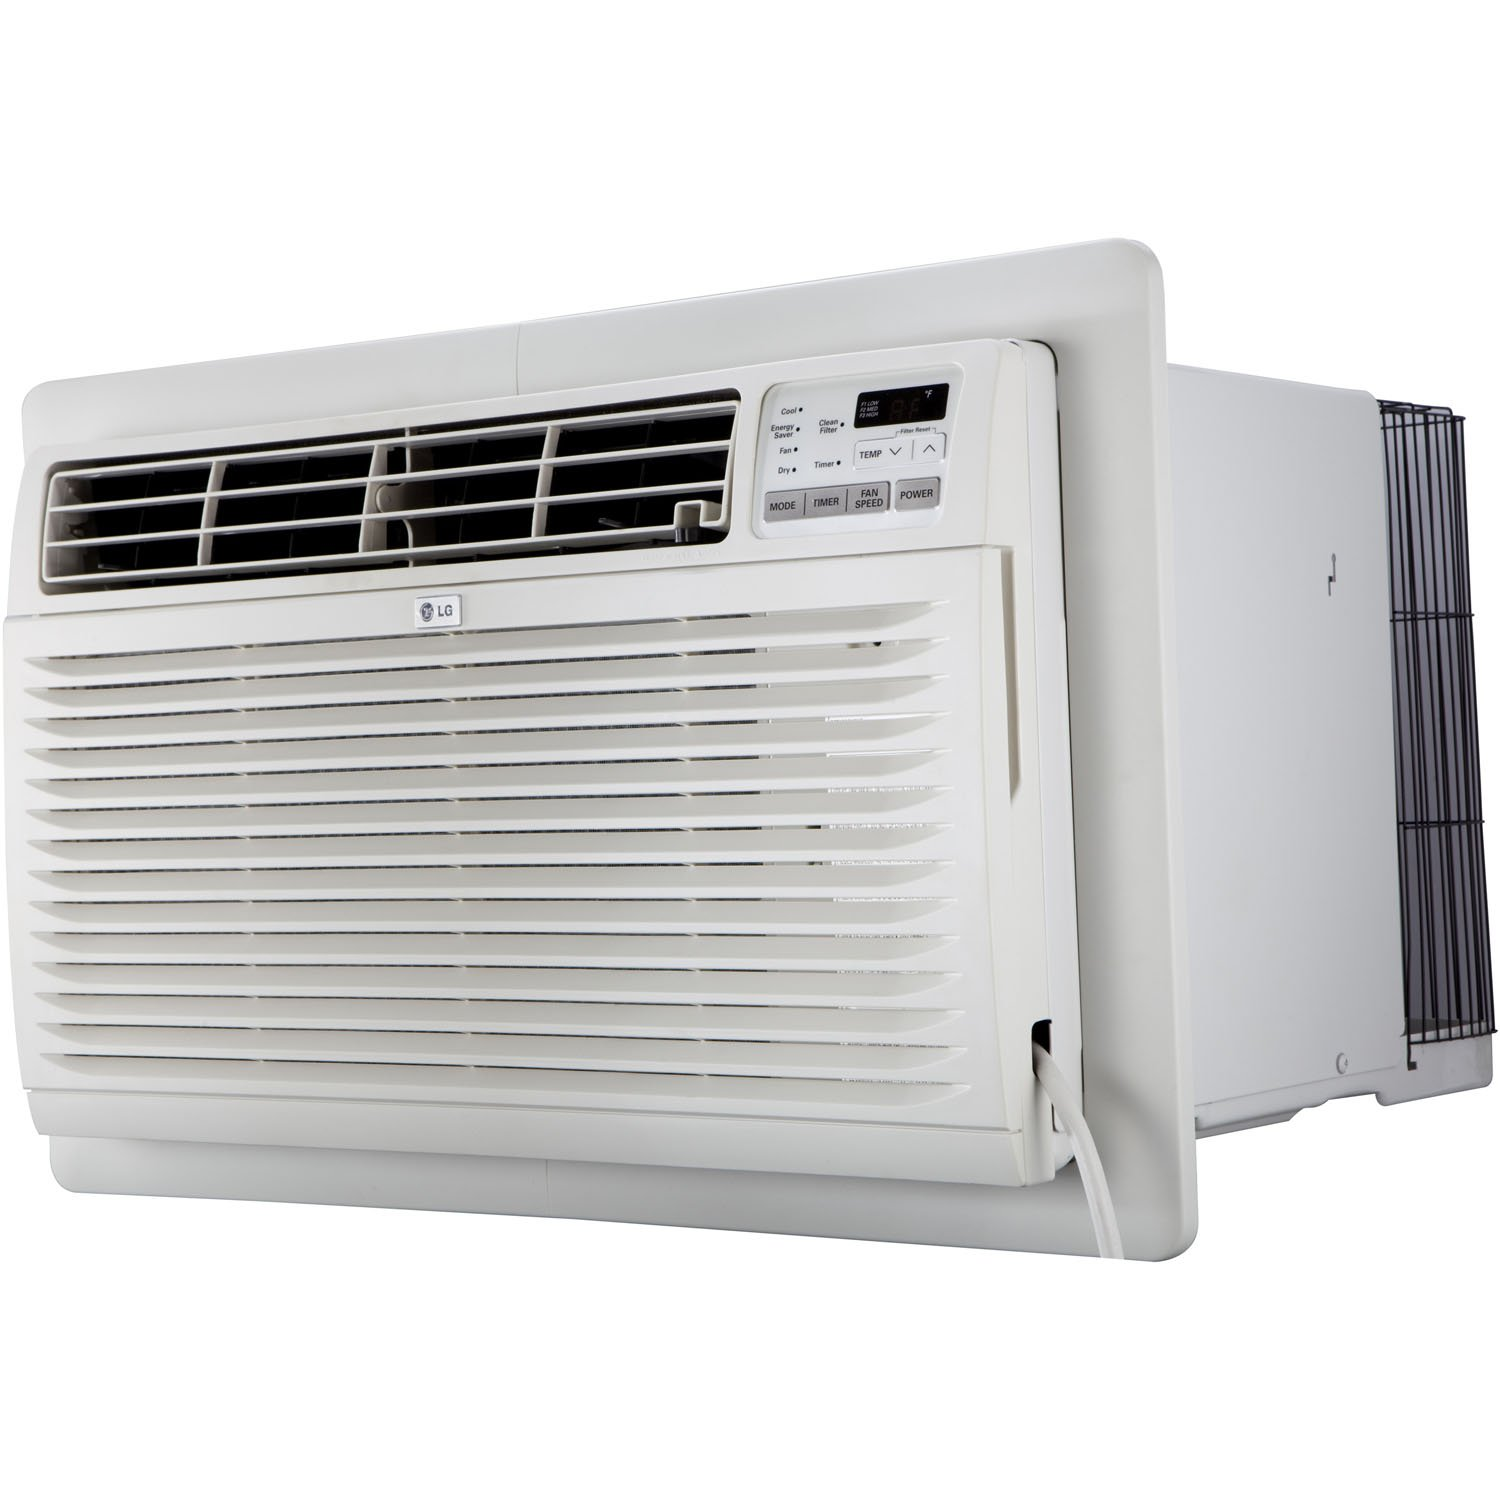 of slim heat pump split ducted mitsubishi mr series price mini awesome mseries conditioner m air the